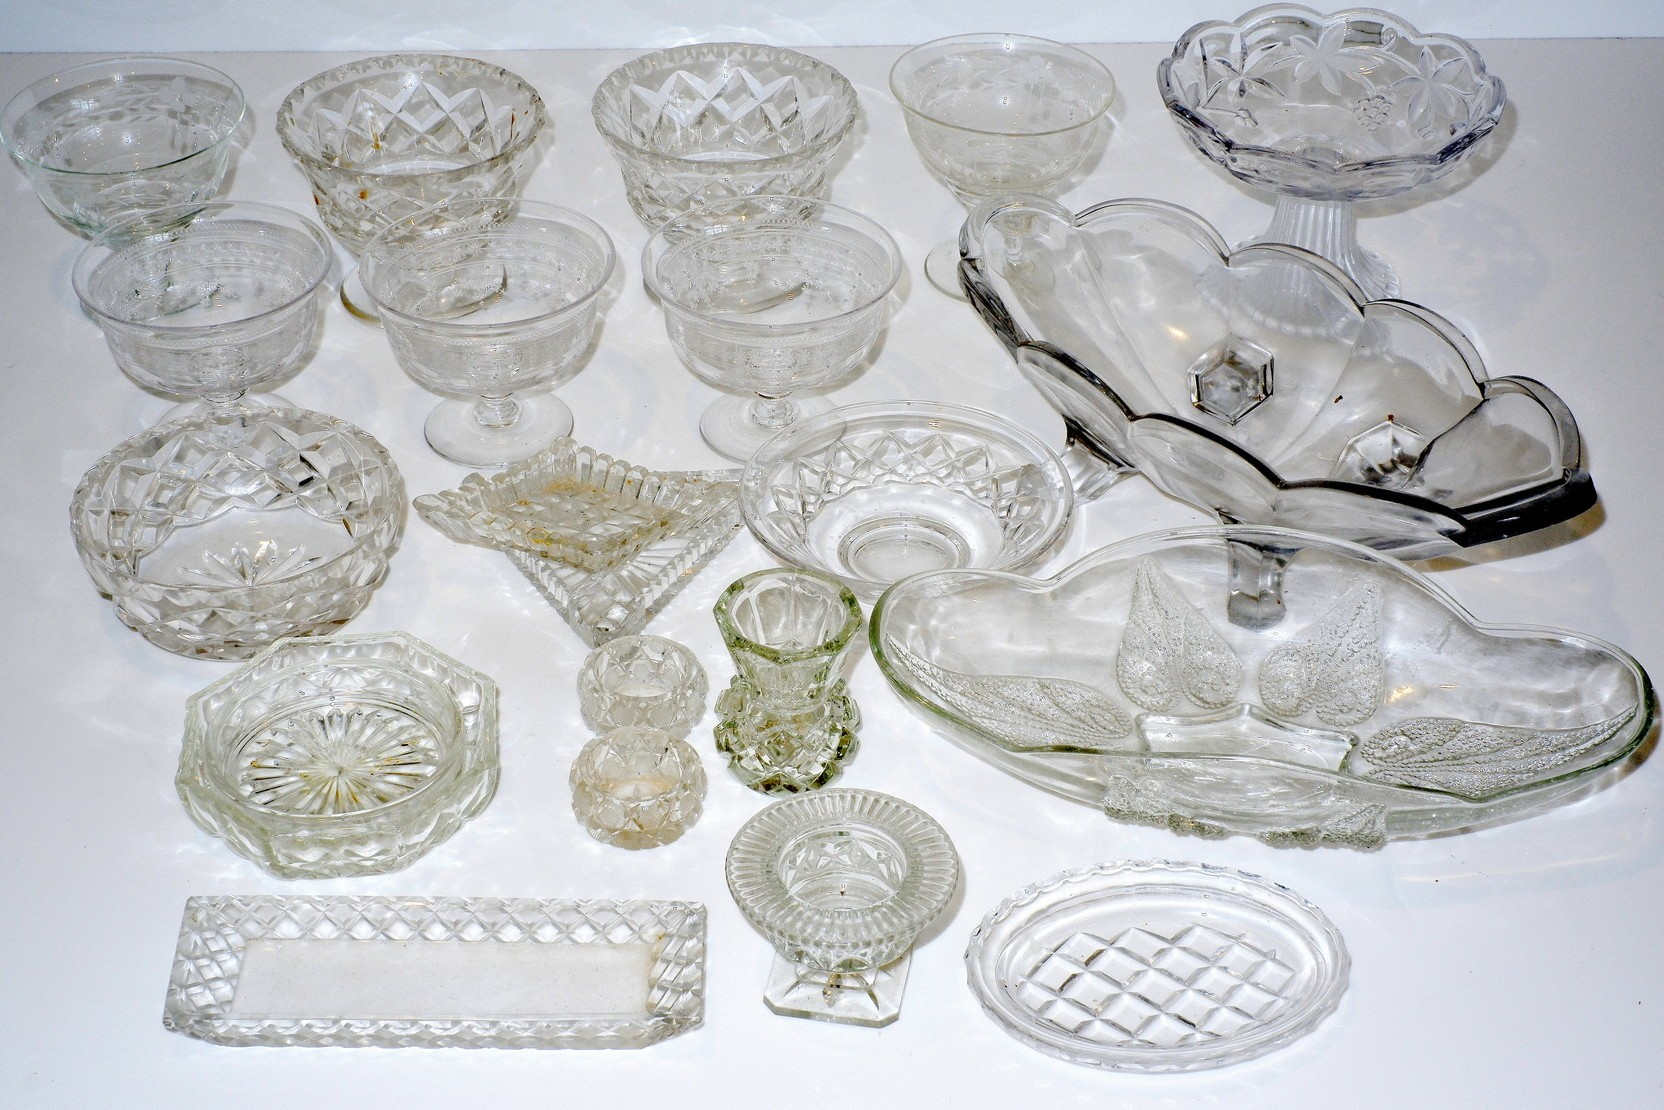 'Large Groups of Cut Crystal and Glass, Including Three Stuart Dessert Coupes'